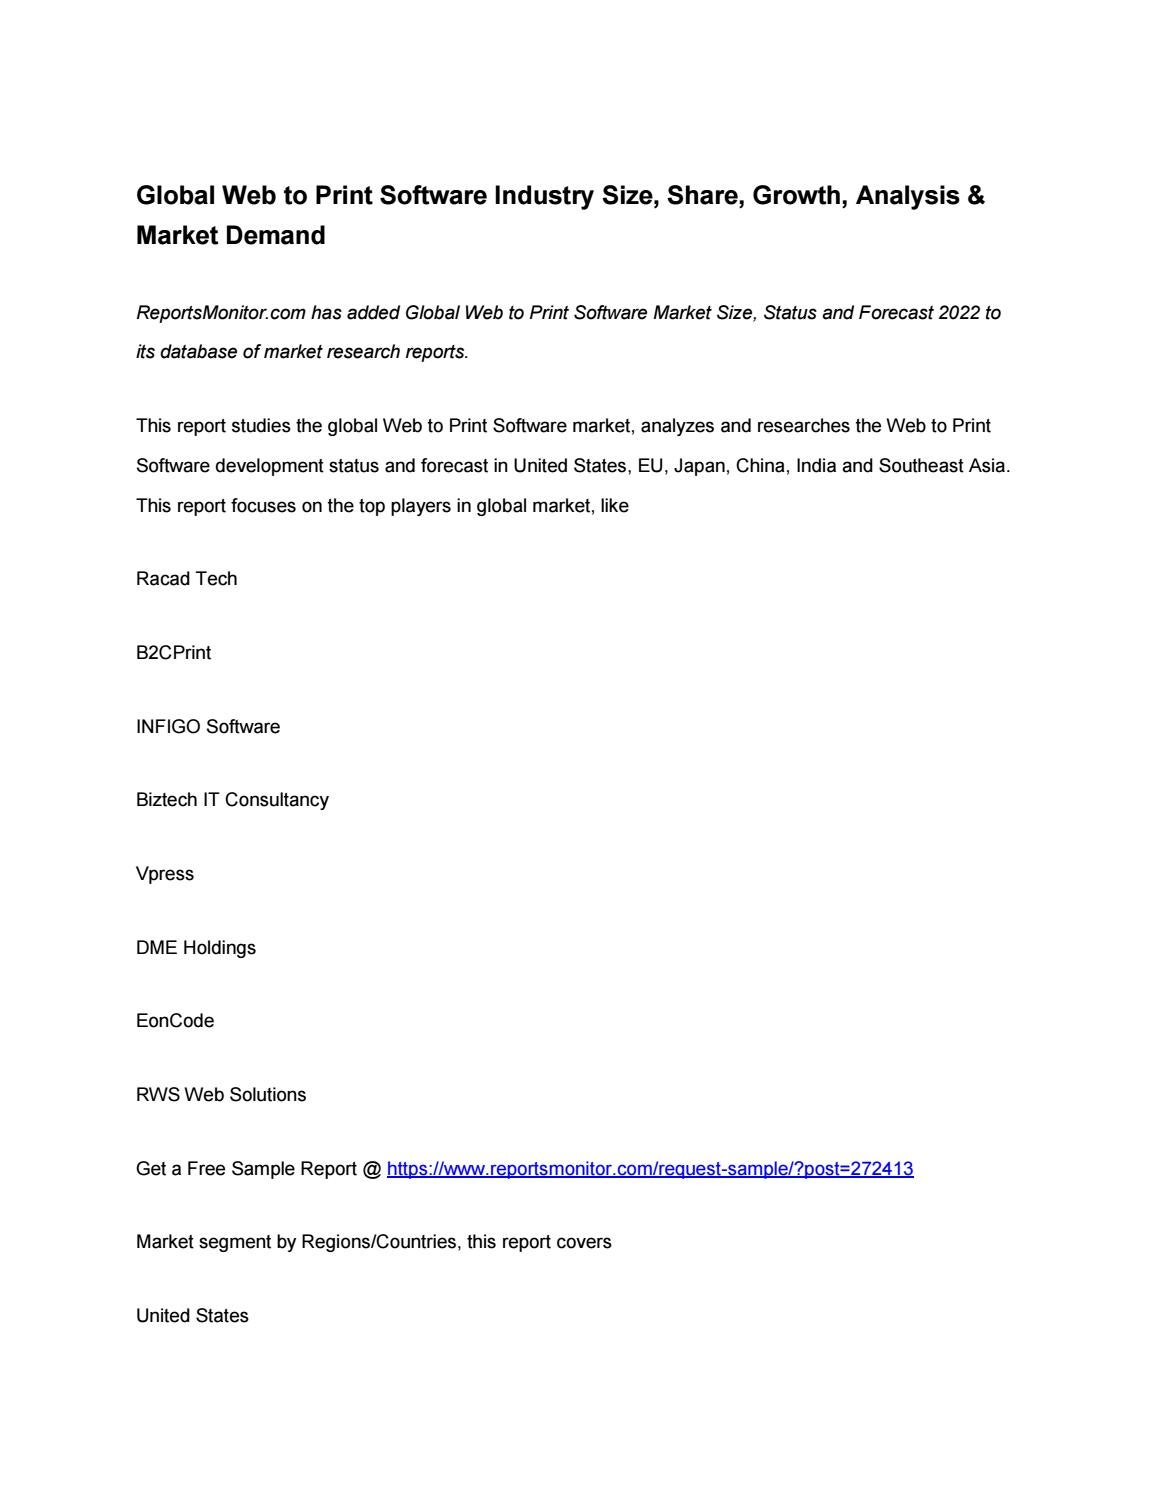 Global web to print software industry size by Daniel